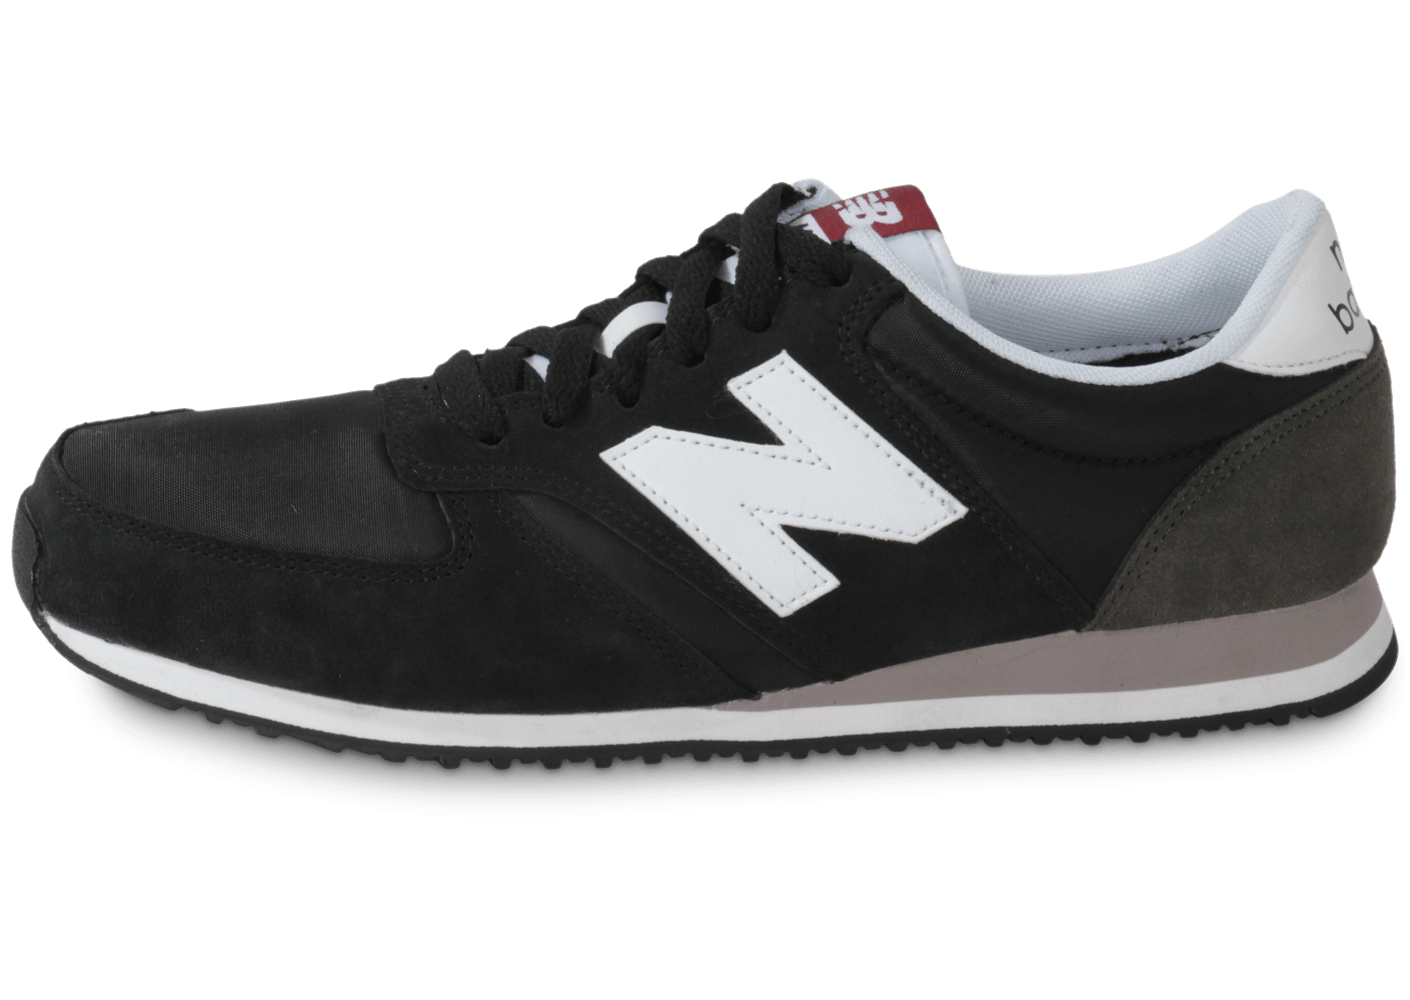 best sneakers 1d0db bcded chaussure new balance chausport